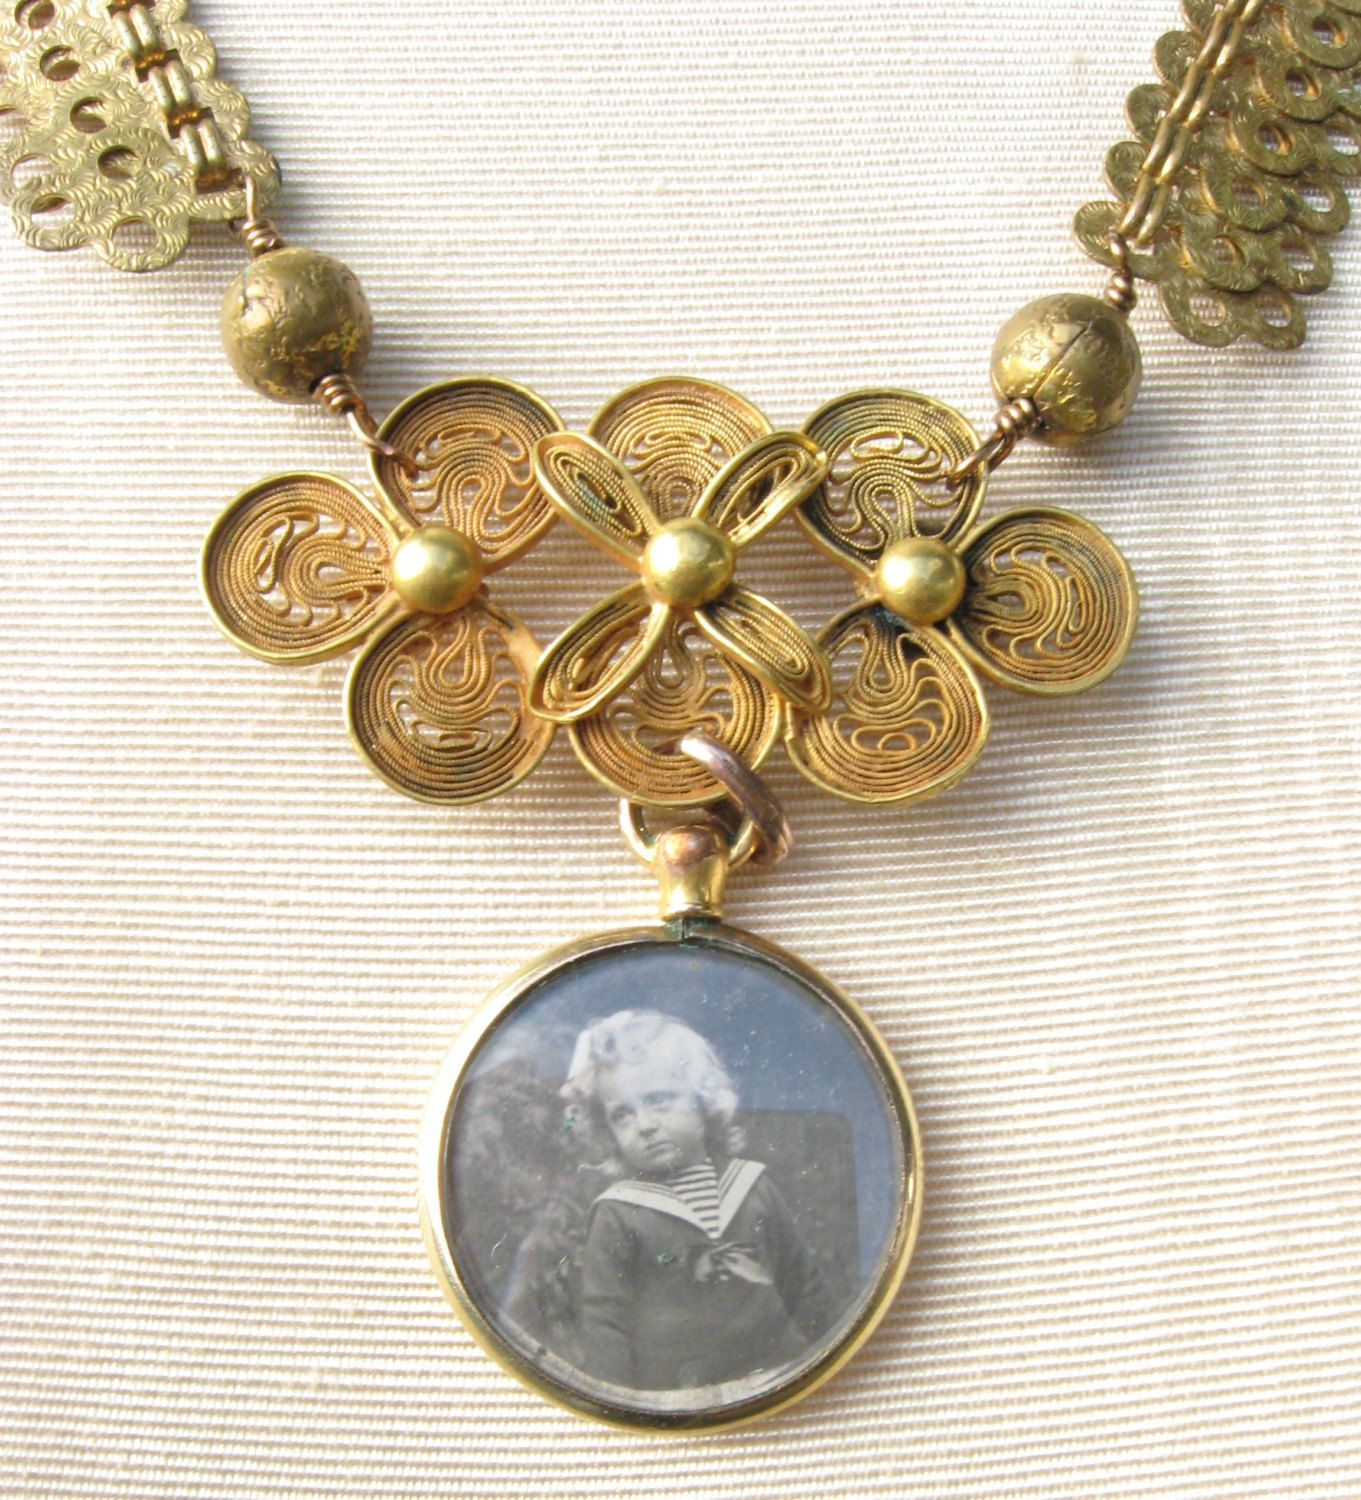 Reserved antique photo locket necklace with repurposed filigree pin